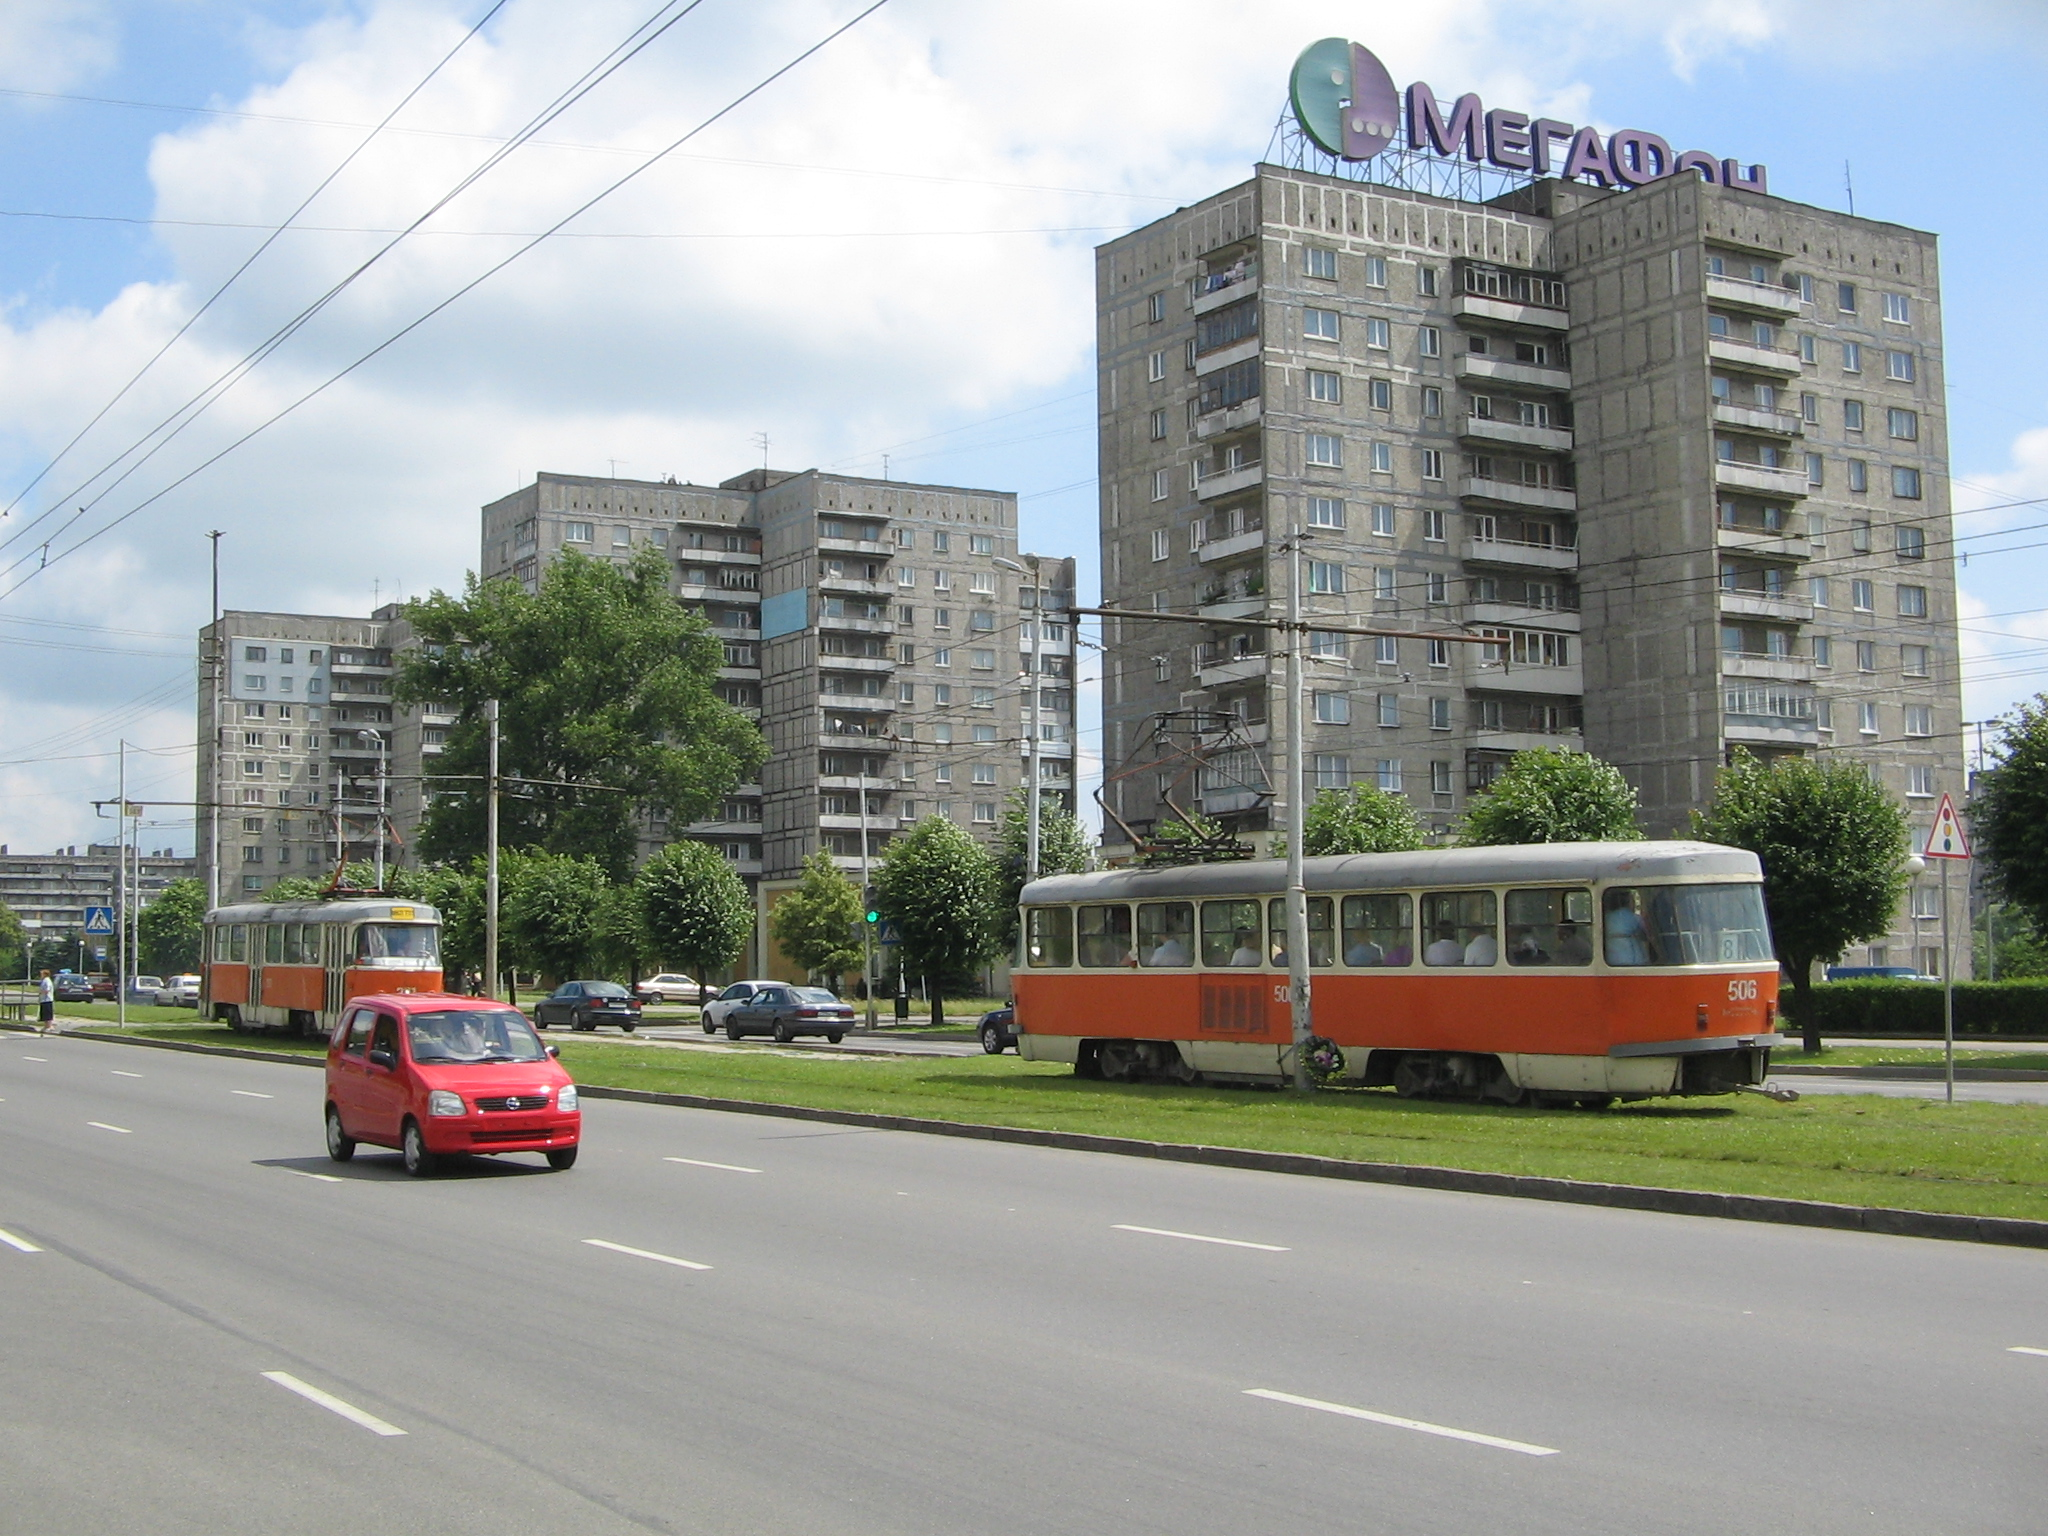 Trams_at_the_Moskovsky_Prospekt,_Kalinin